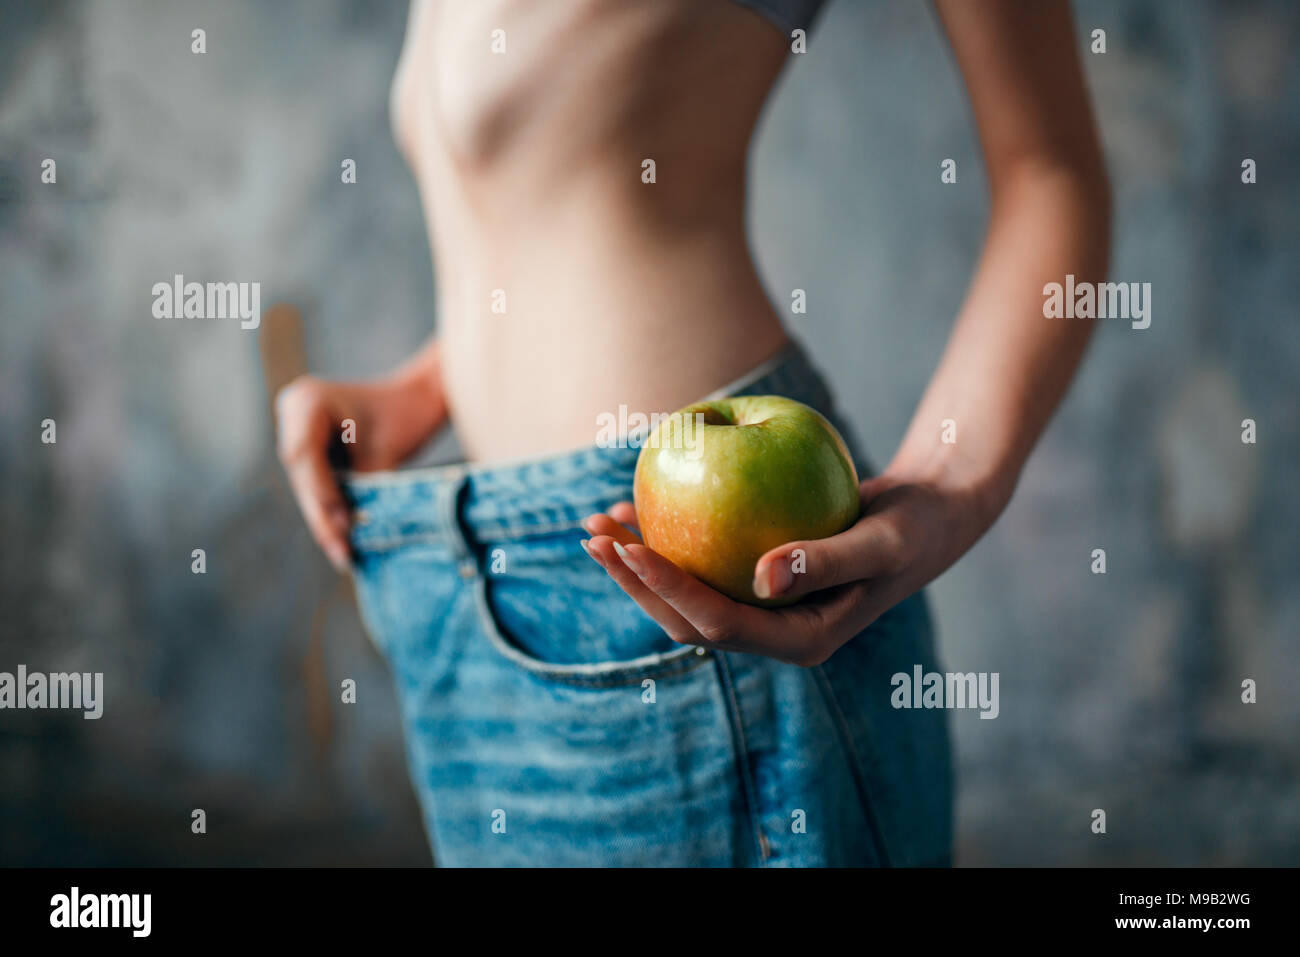 Woman with apple in hand tries on big size jeans - Stock Image